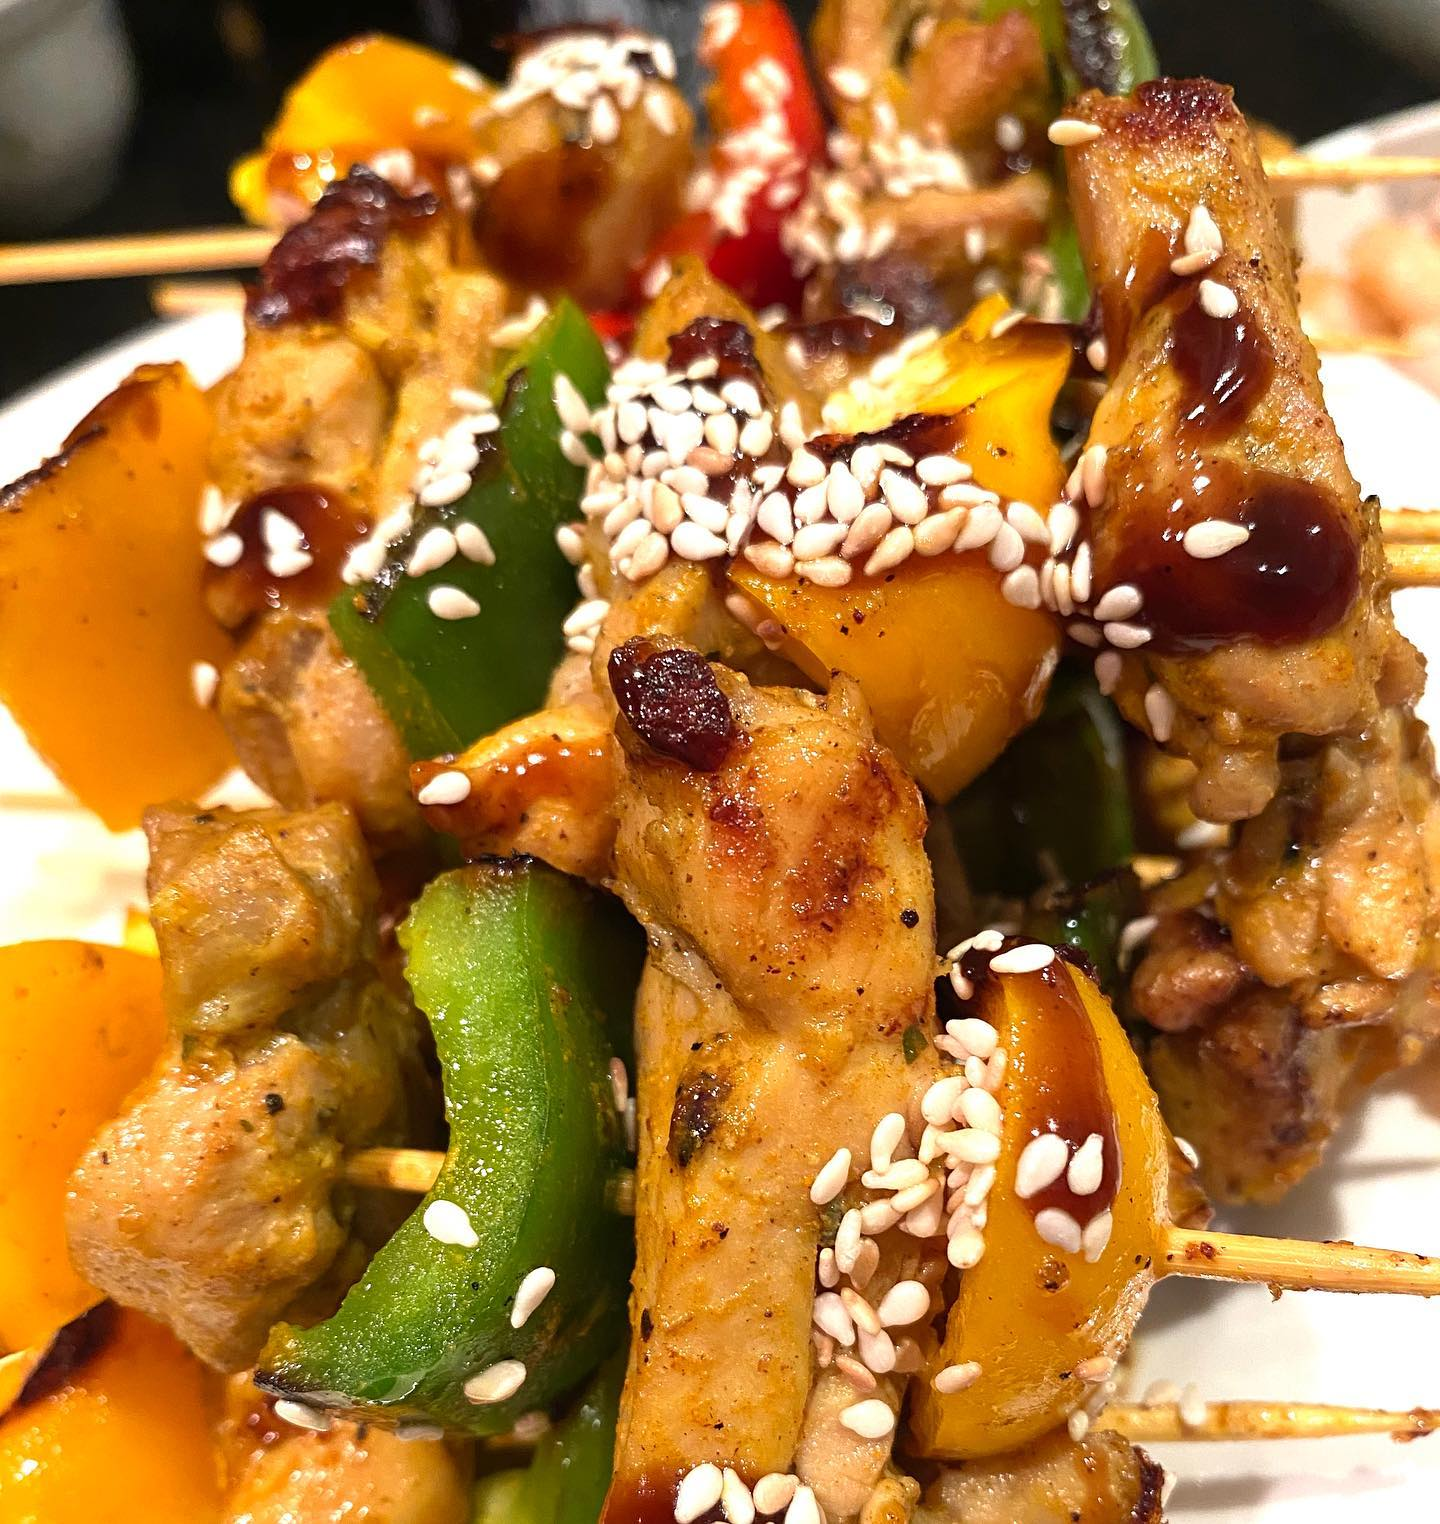 BBQ & Deep Fried Dishes